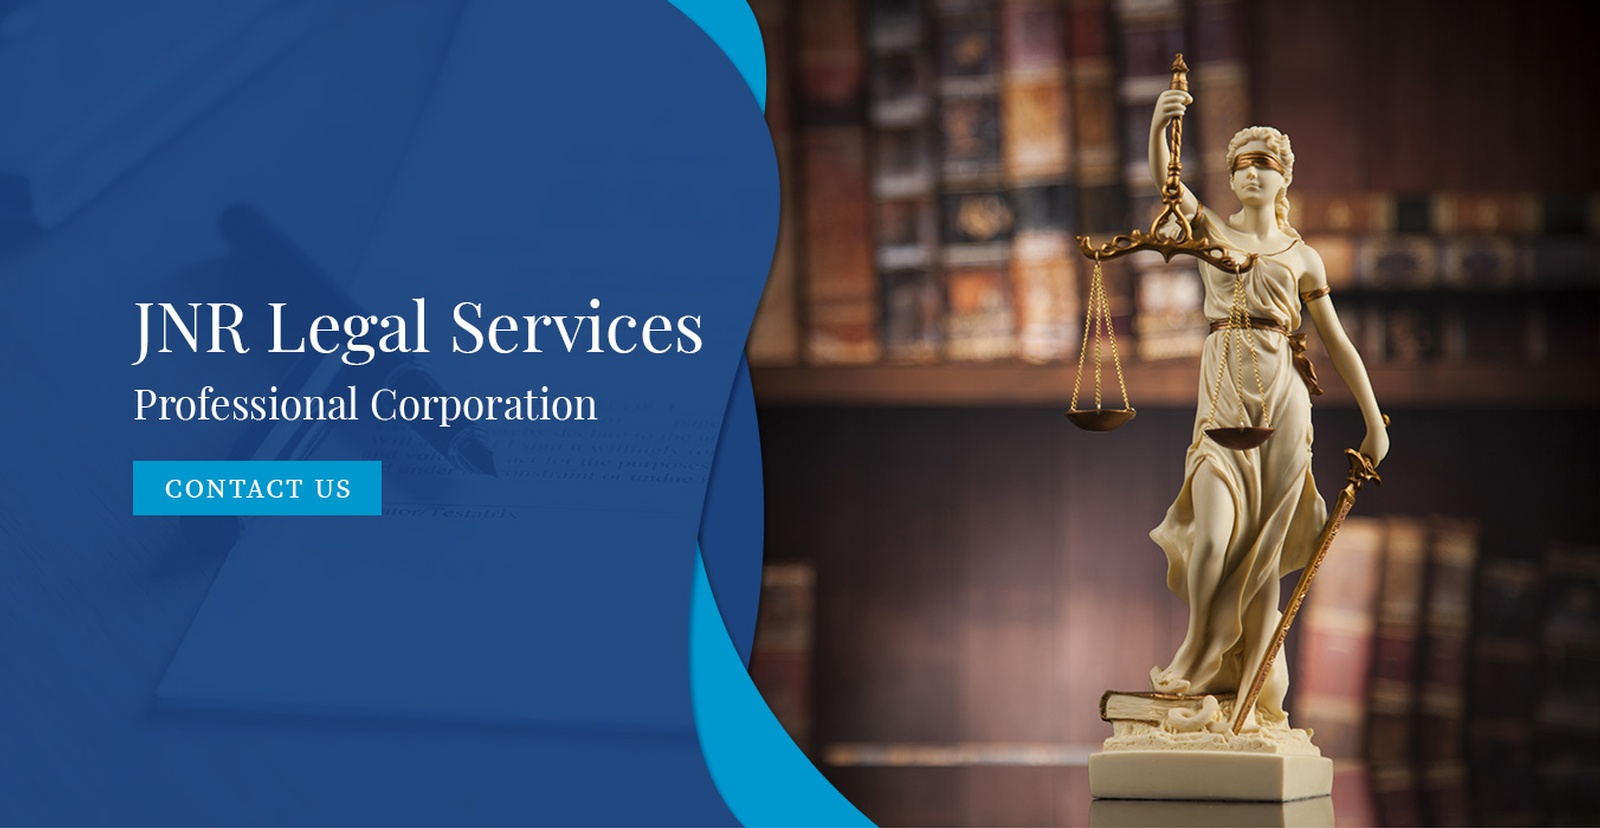 JNR Legal Services Professional Corporation